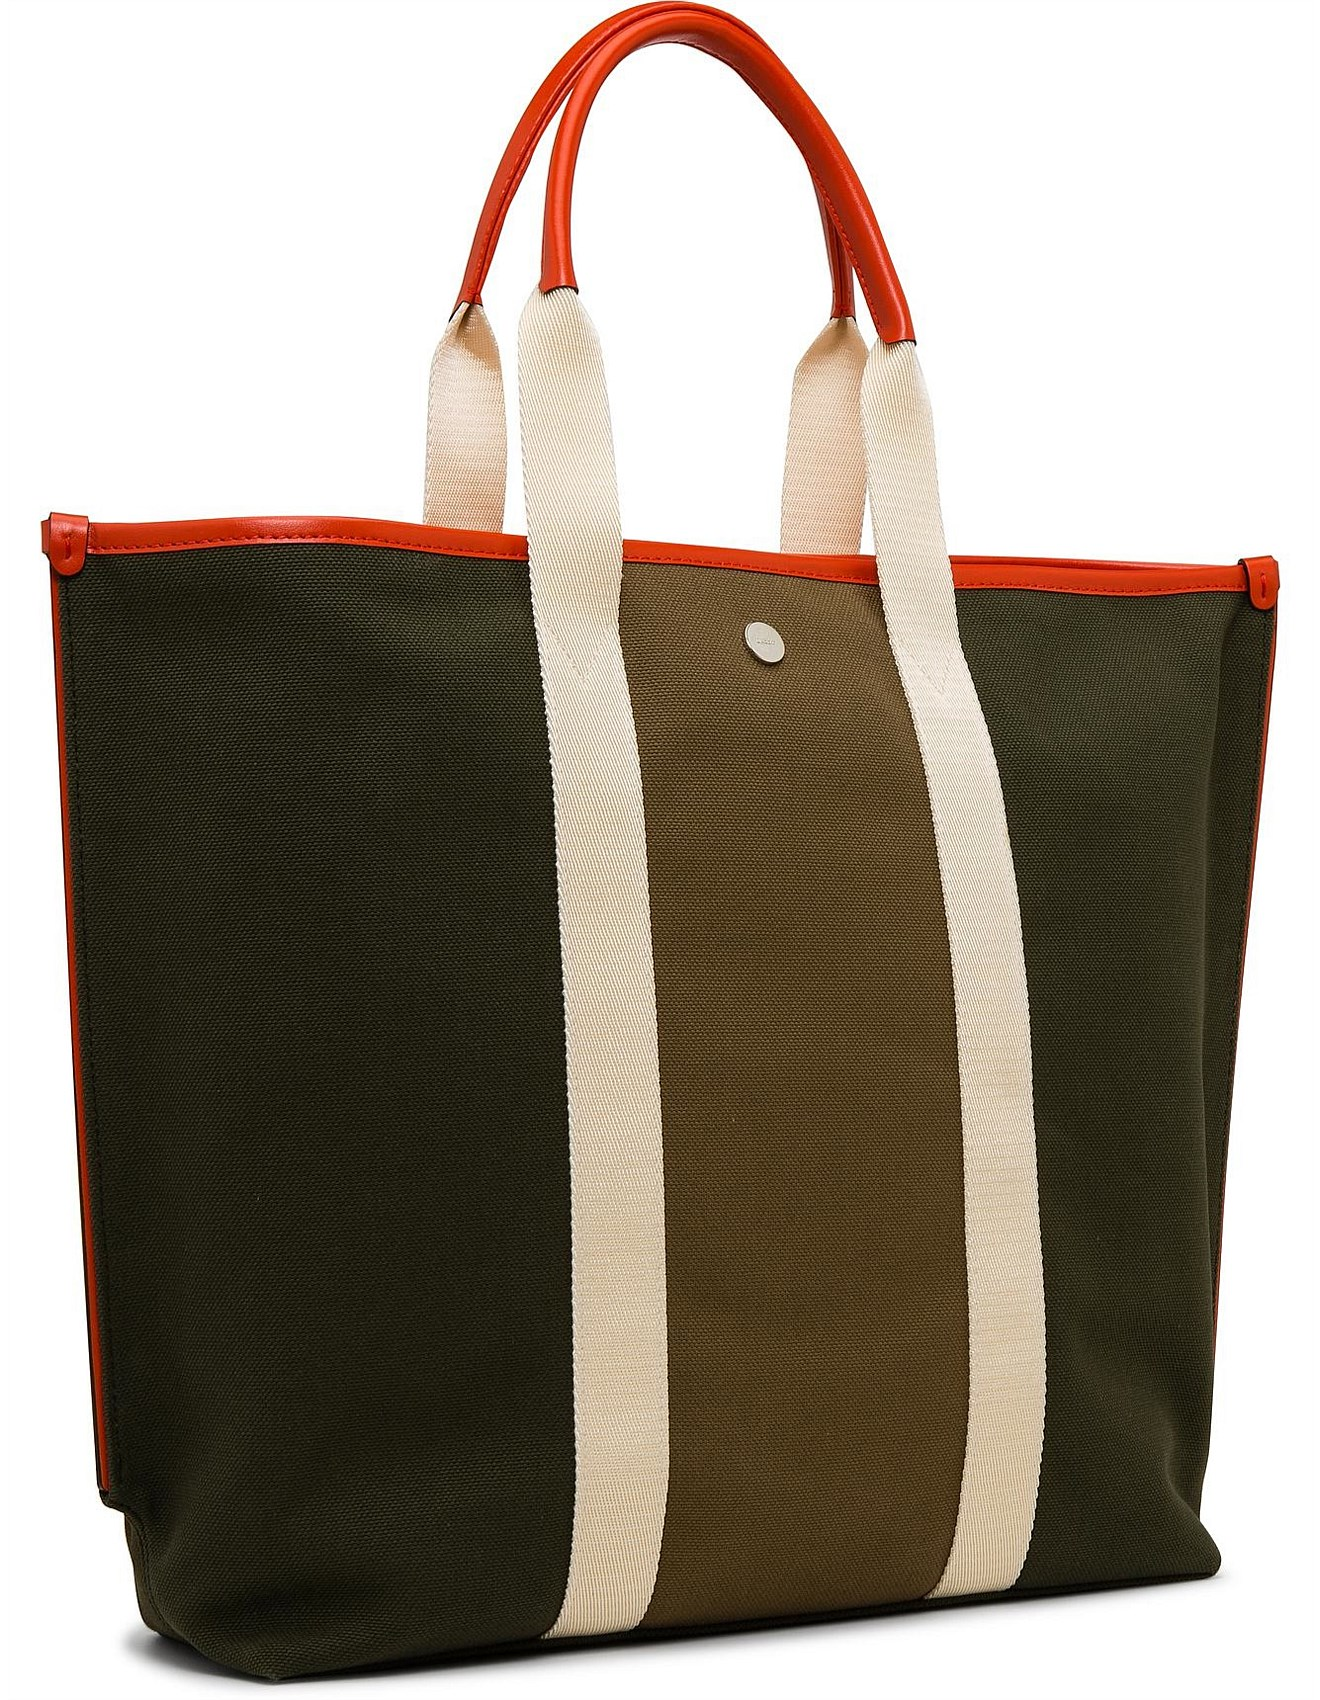 9d98ca841 Bally | Buy Bally Shoes, Wallets & More Online | David Jones - CANVAS TOTE  MD